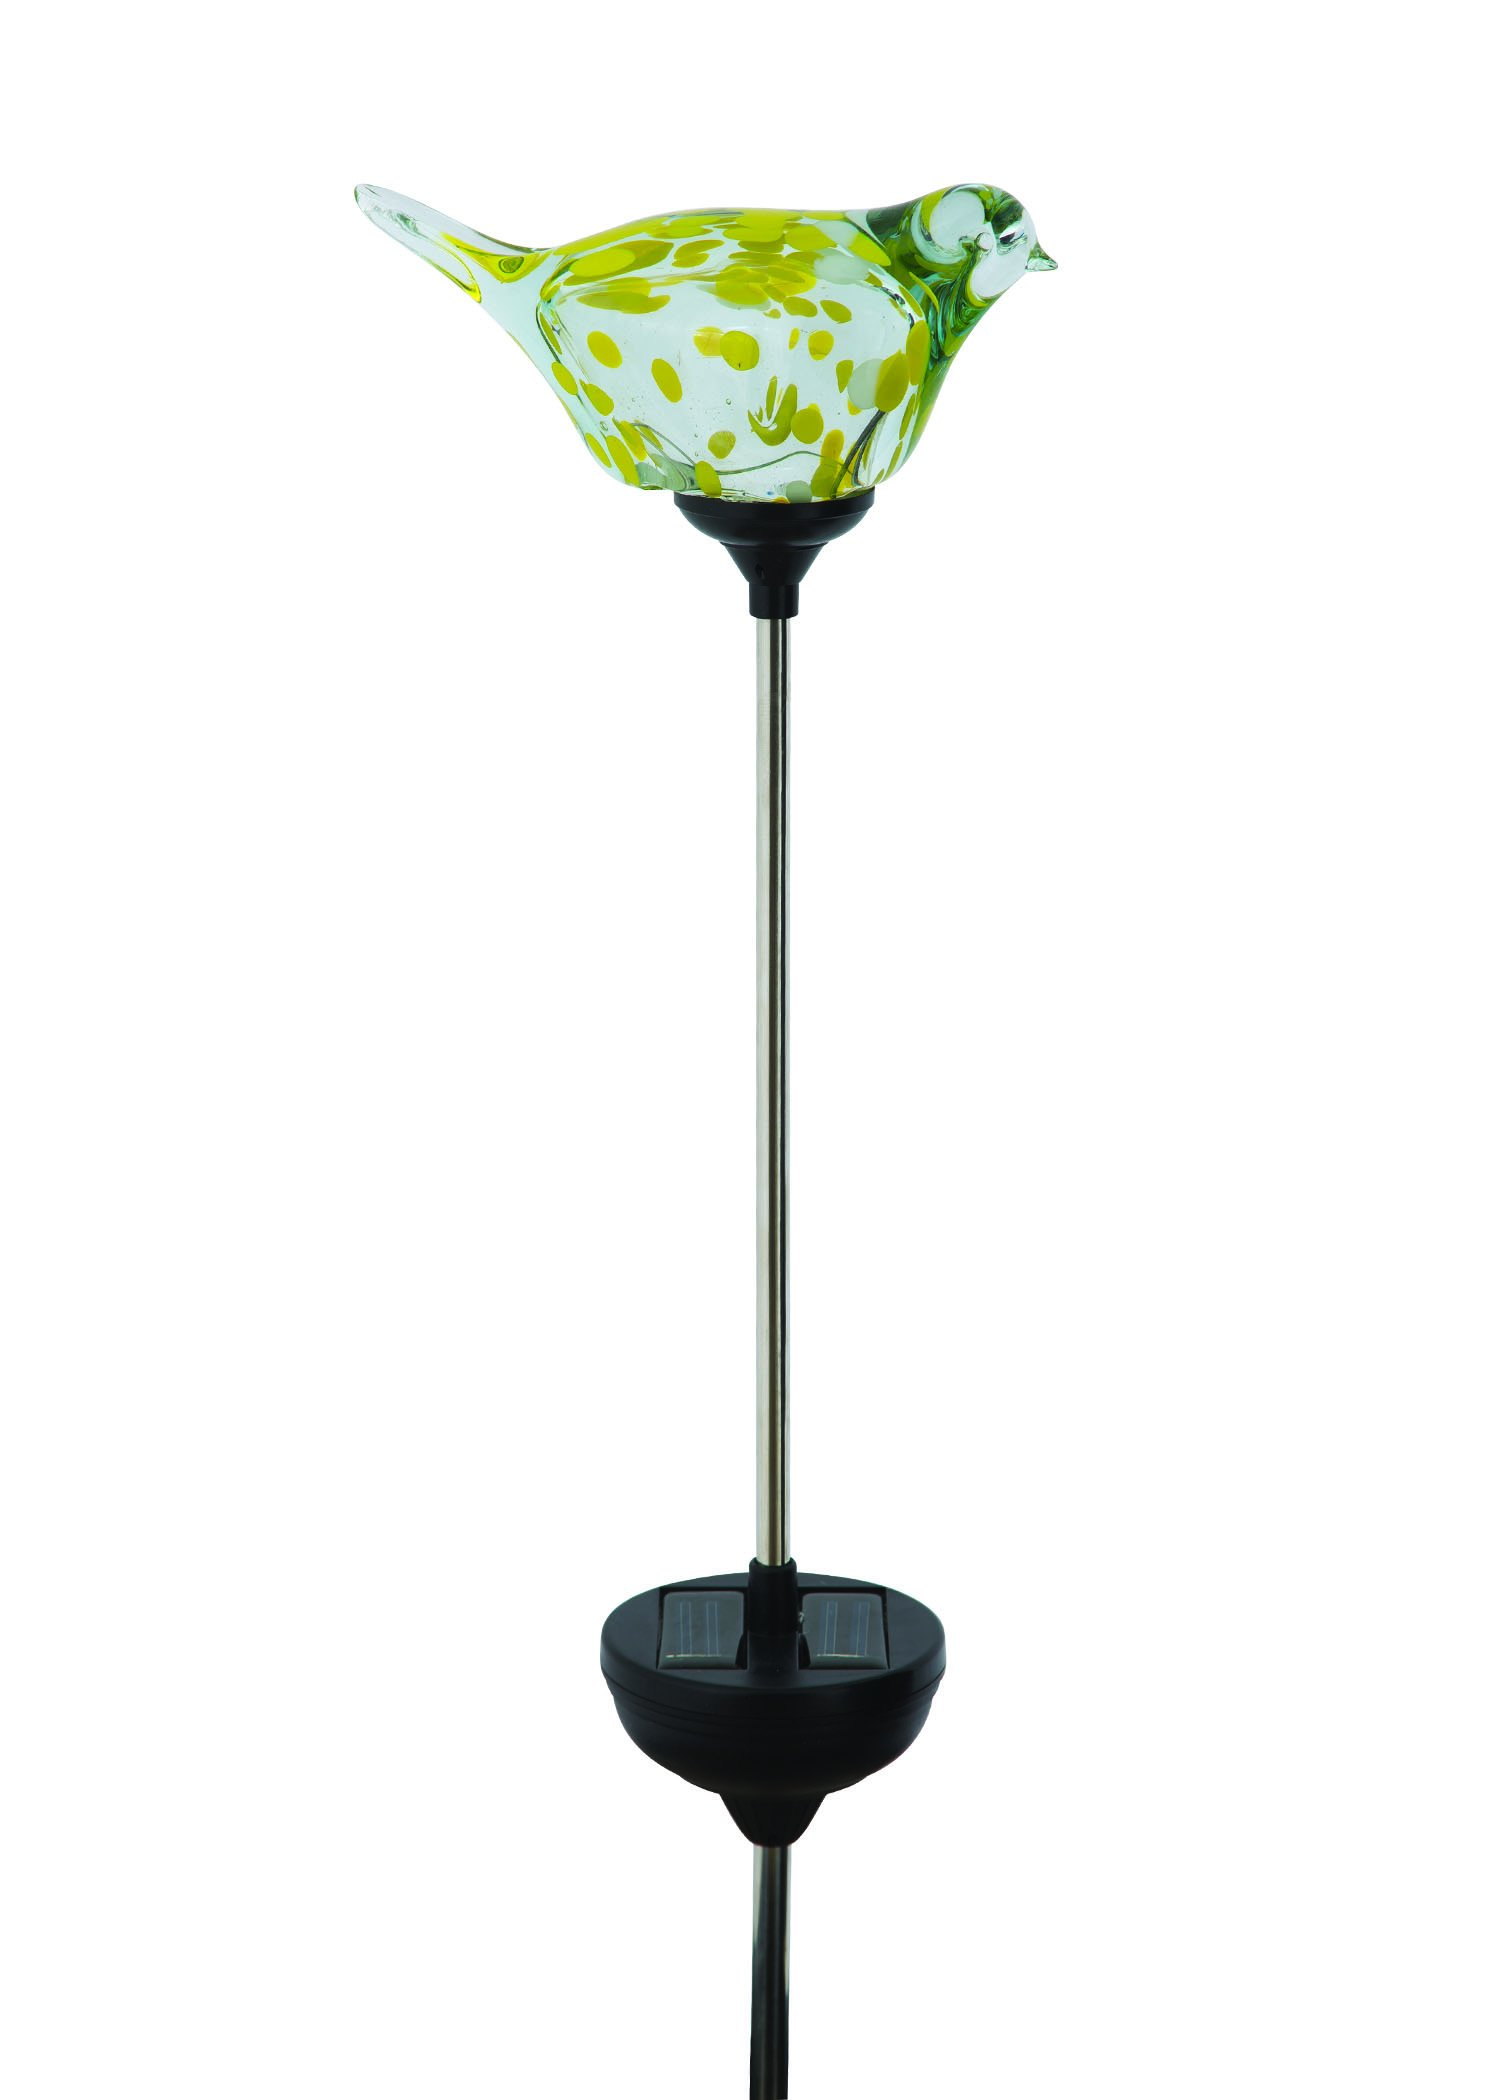 Russco III GS137029 Solar Powered LED Glass Bird Garden Stake, Yellow